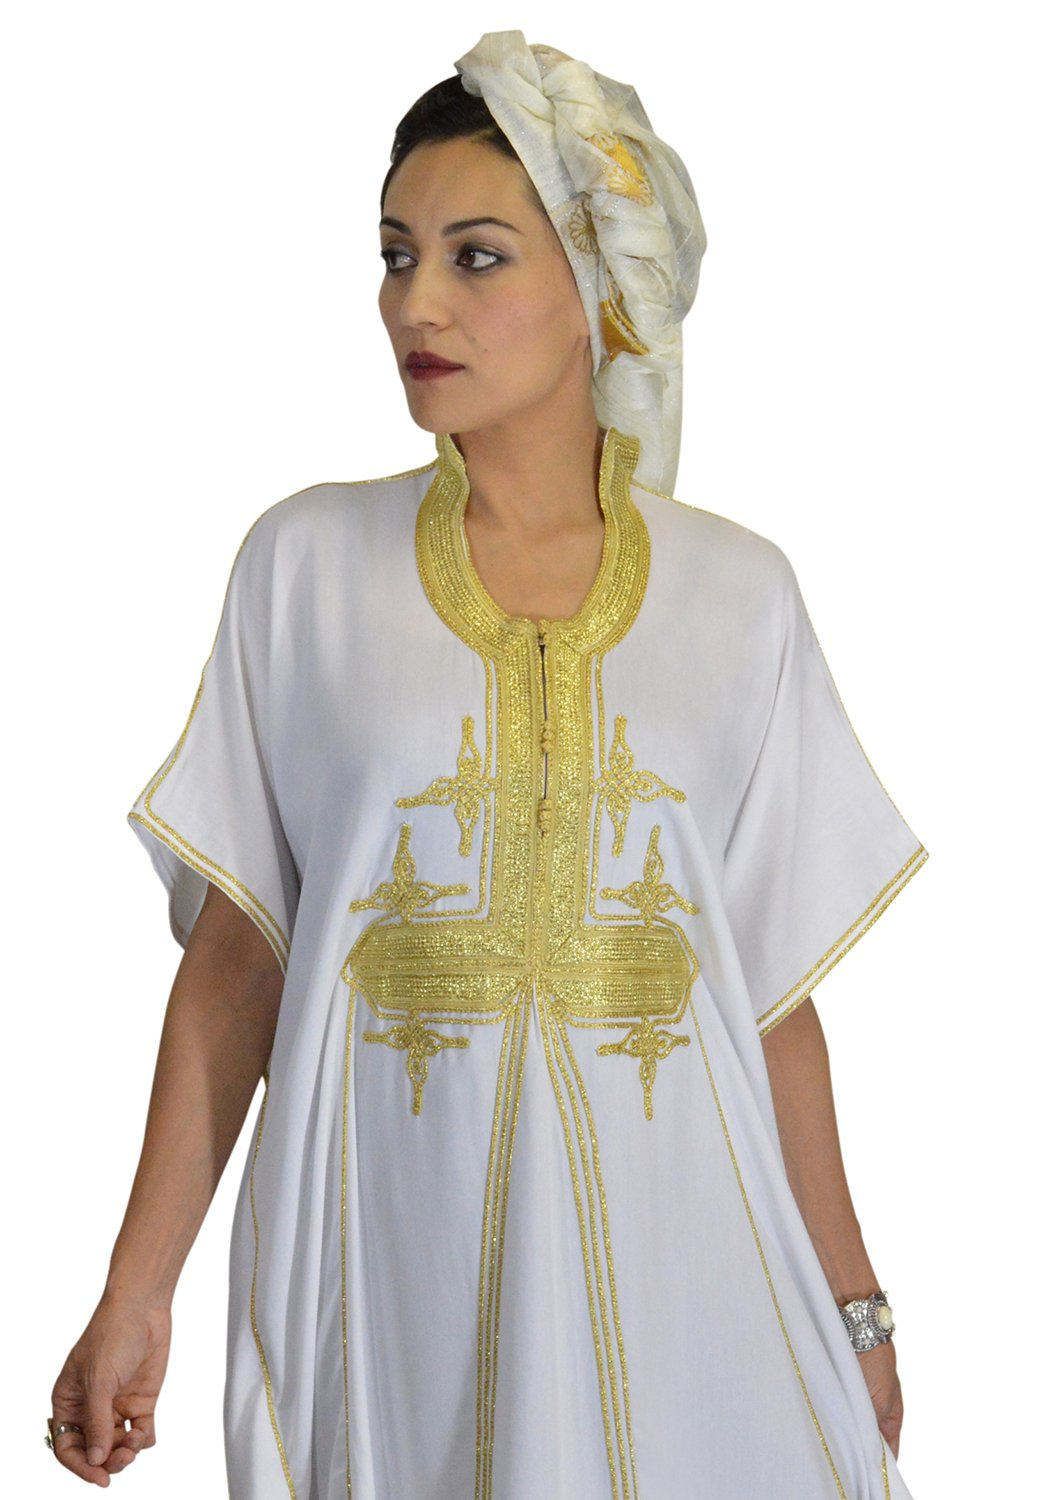 Moroccan Caftans Women Butterfly Hand Made with Gold Embroidery Long One Size White by Moroccan Caftans (Image #2)